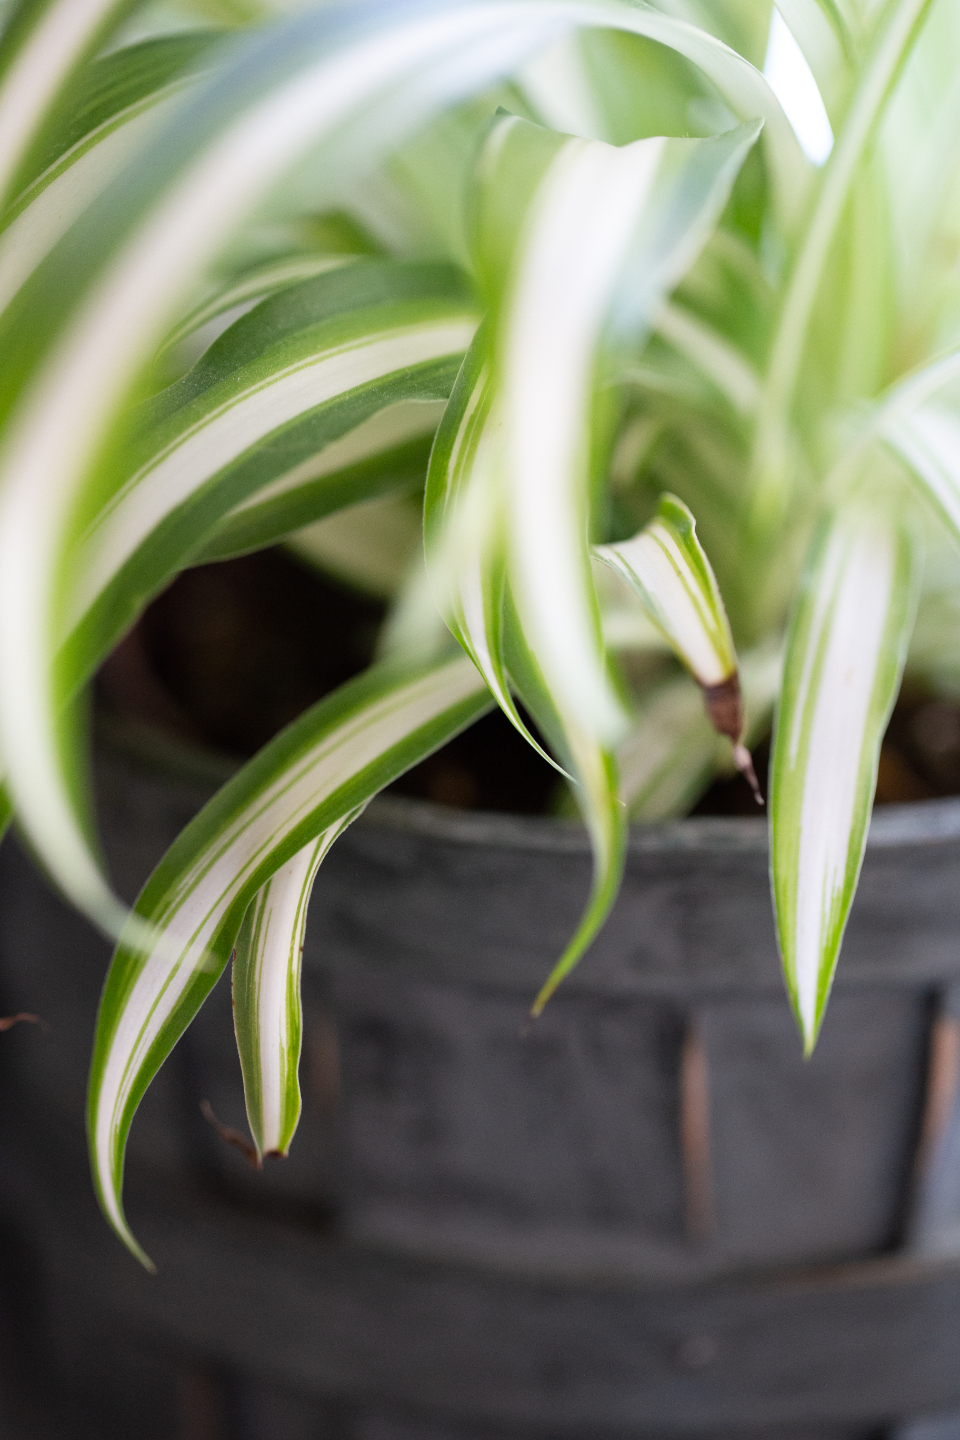 house plant macro indoor decor close up green plantlife planter potted leaf leaves nature grow growth botany decoration detail